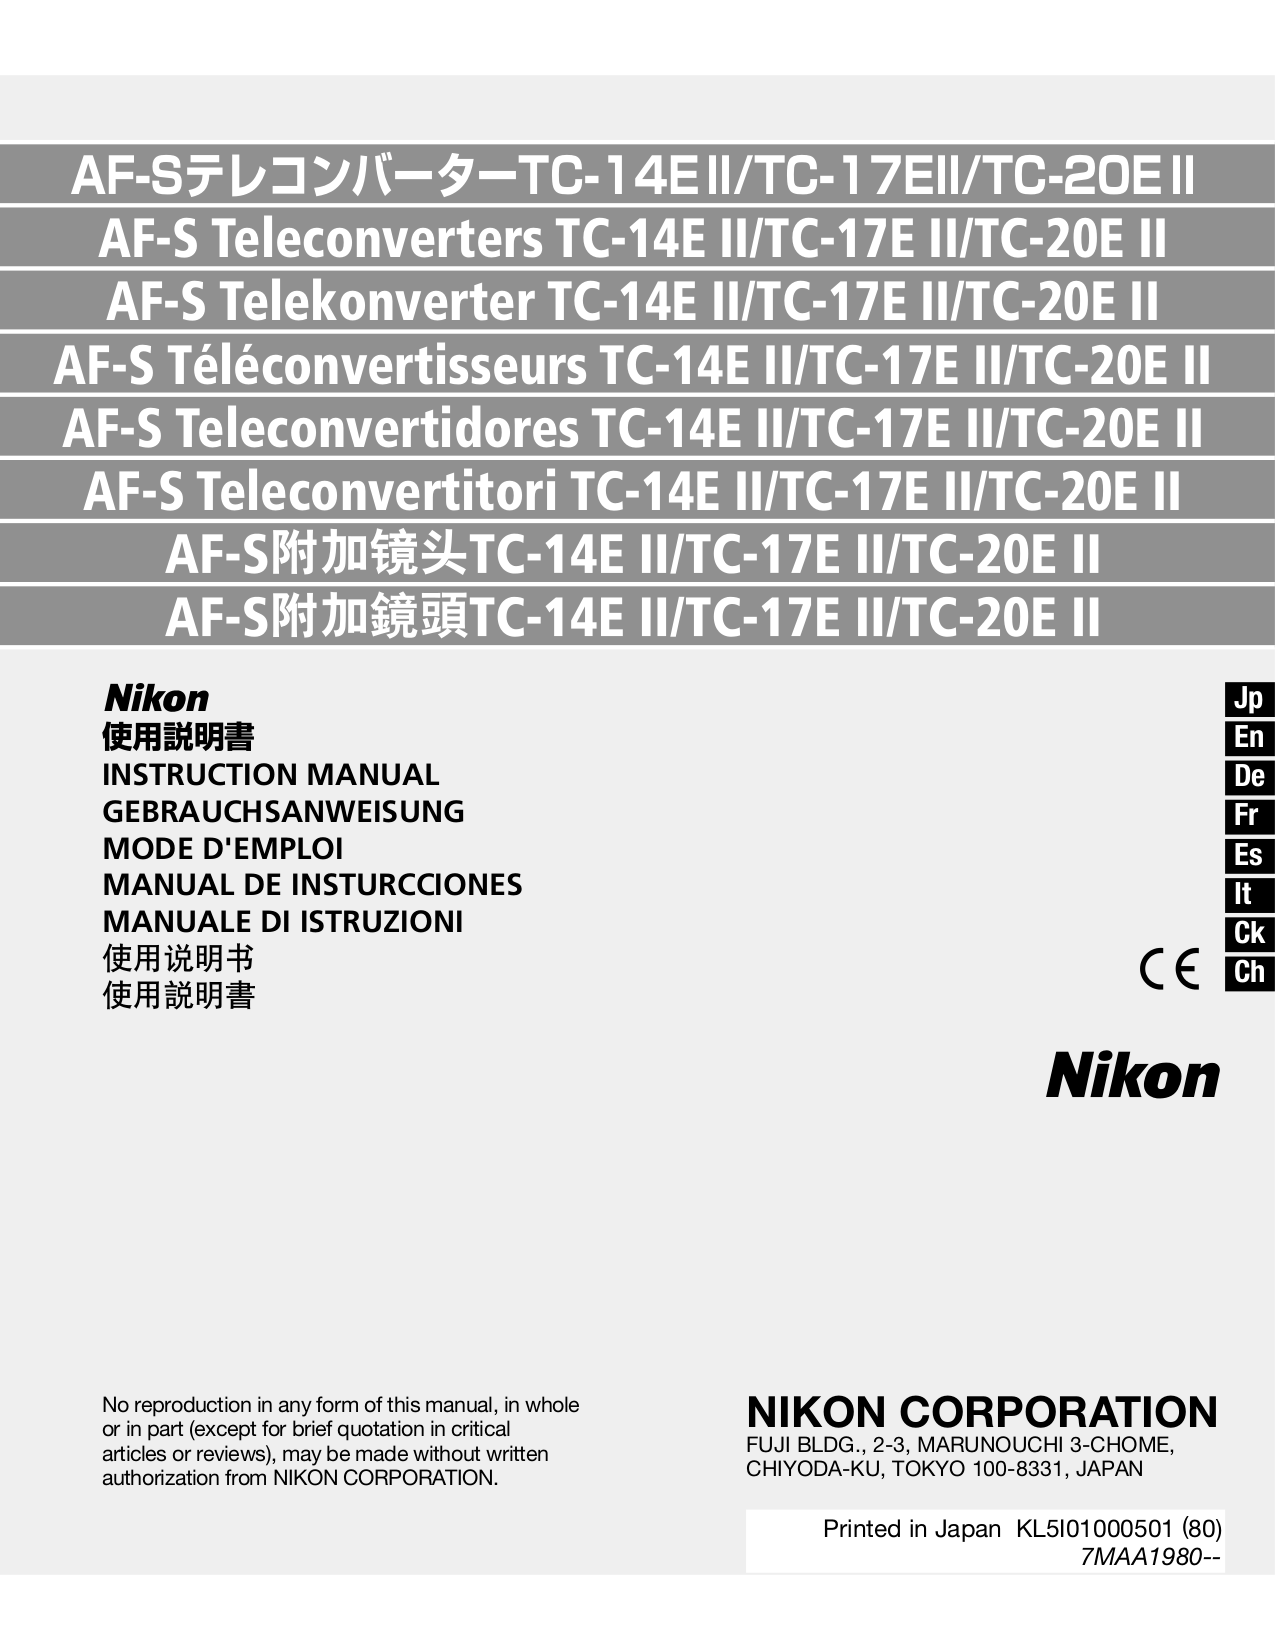 pdf for Nikon Other TC-17E II Camera Teleconverters manual